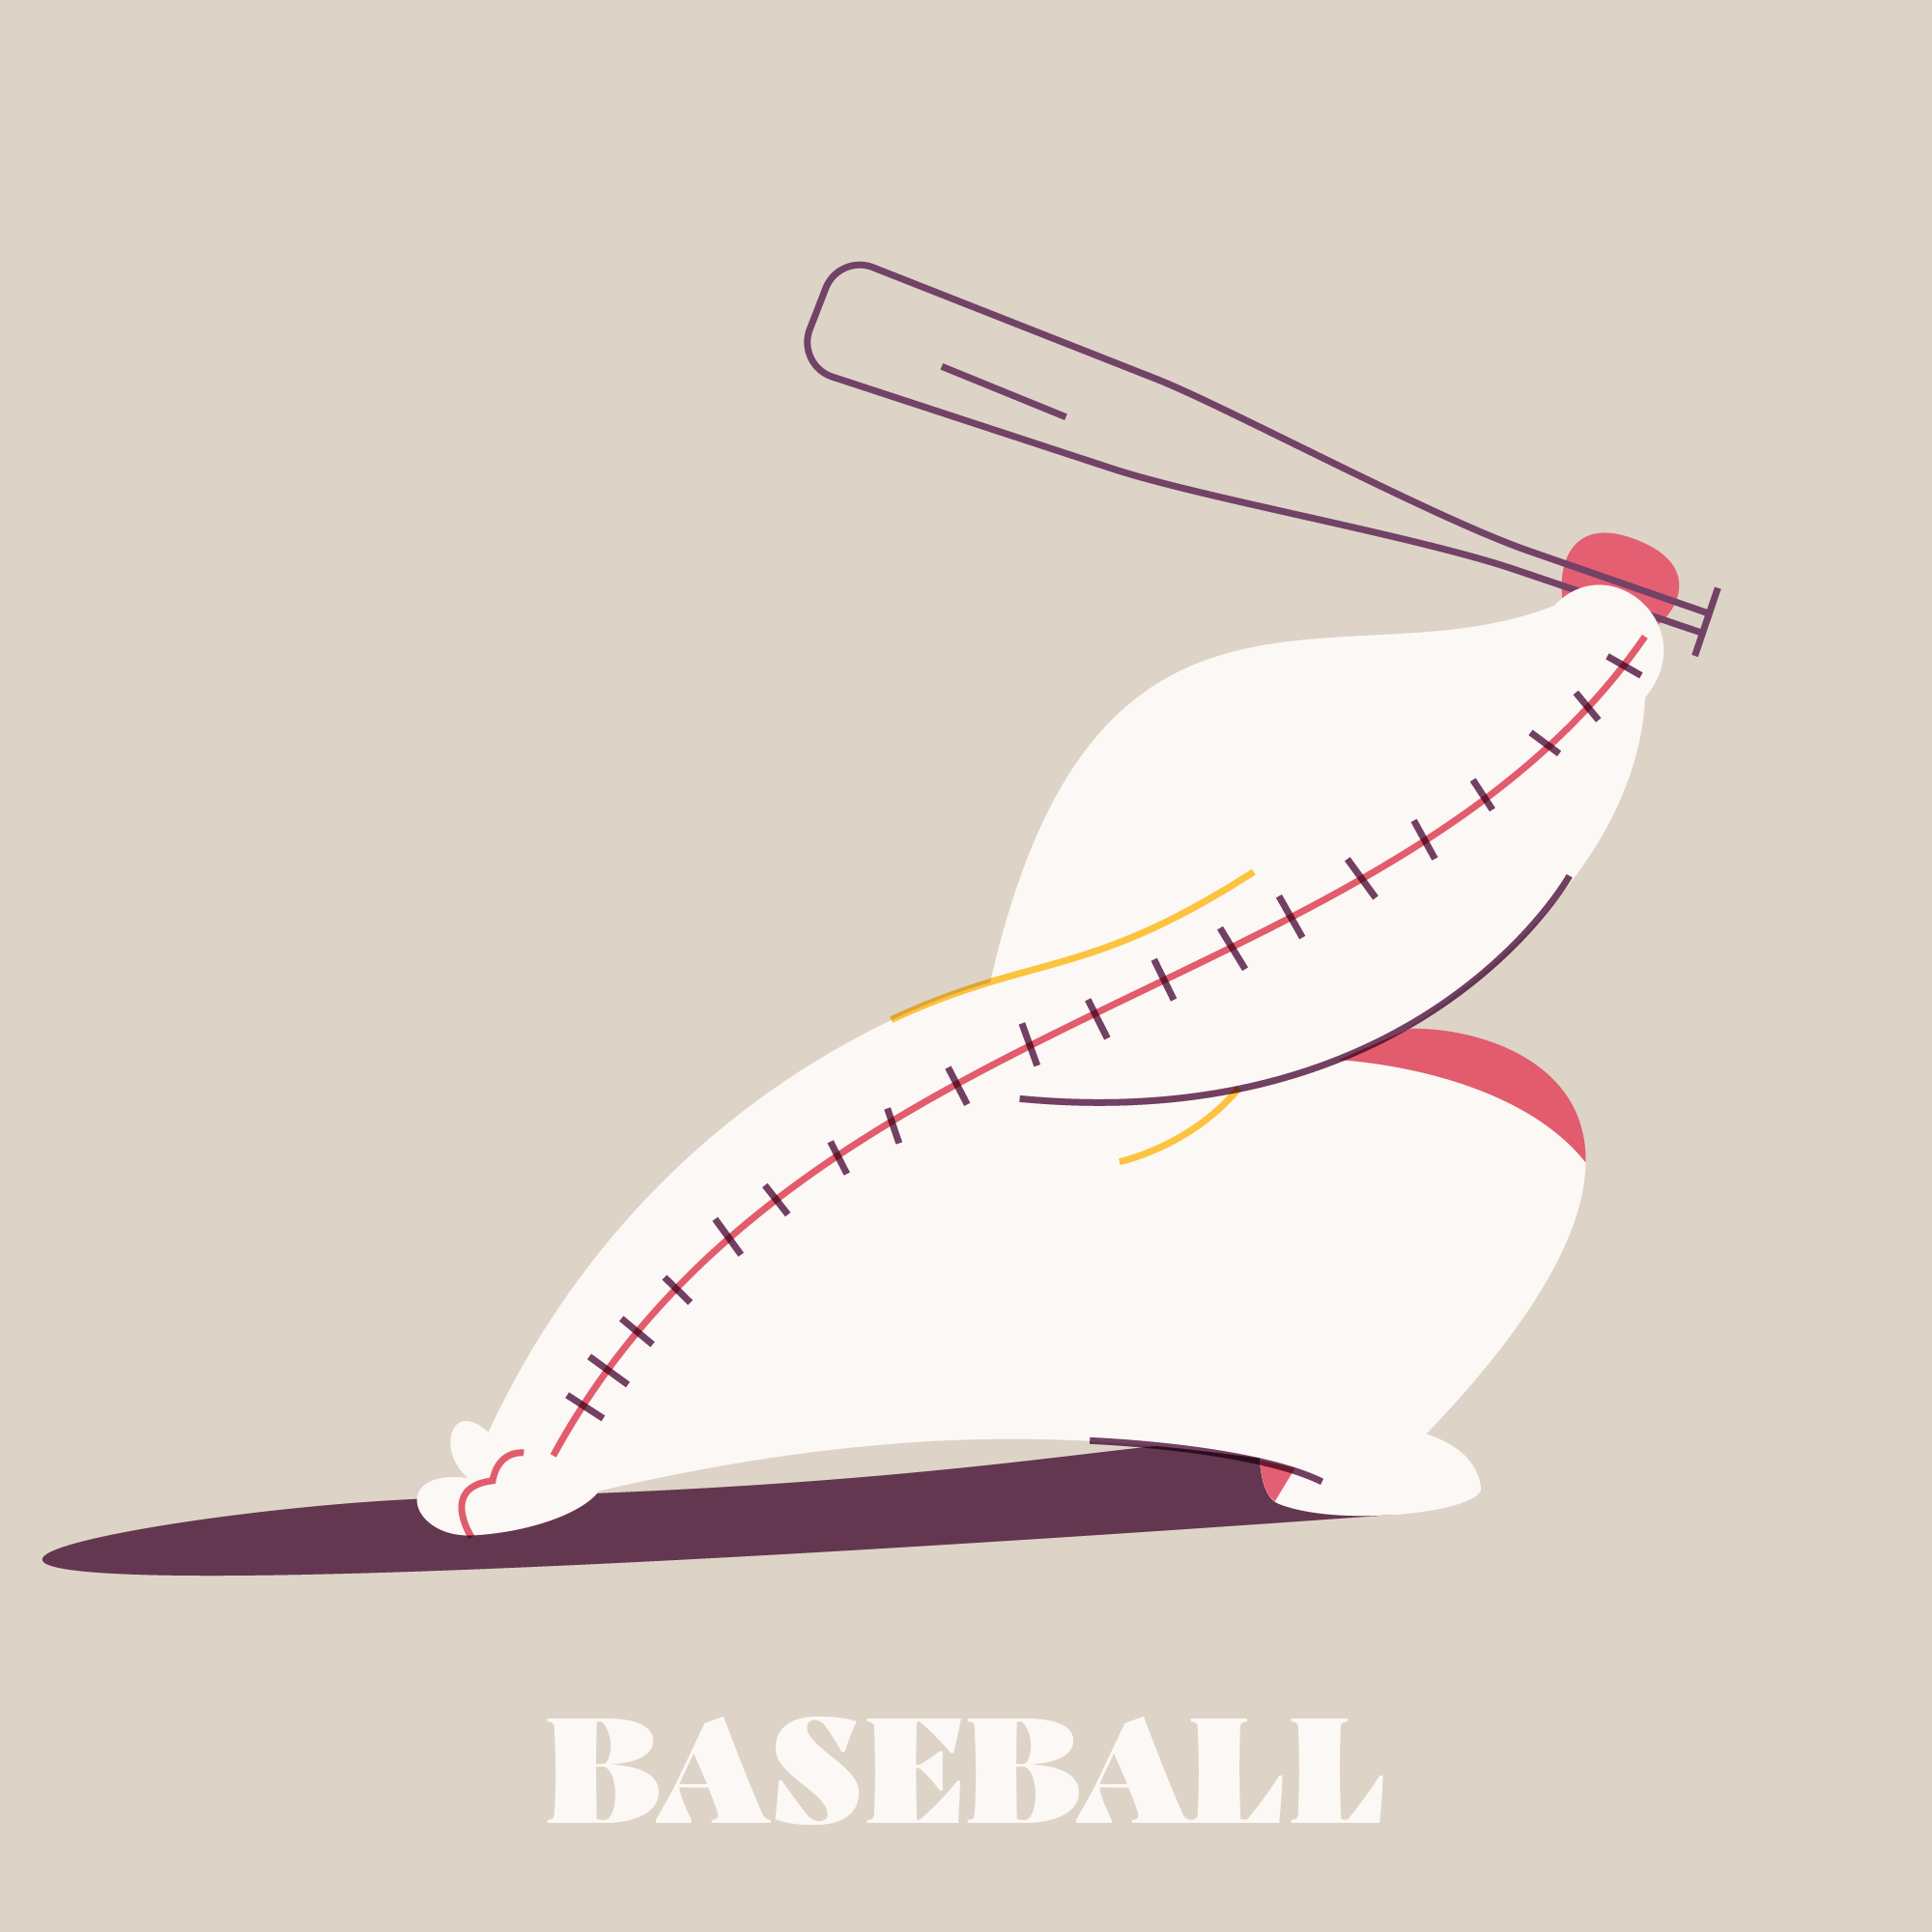 sacks-baseball.png